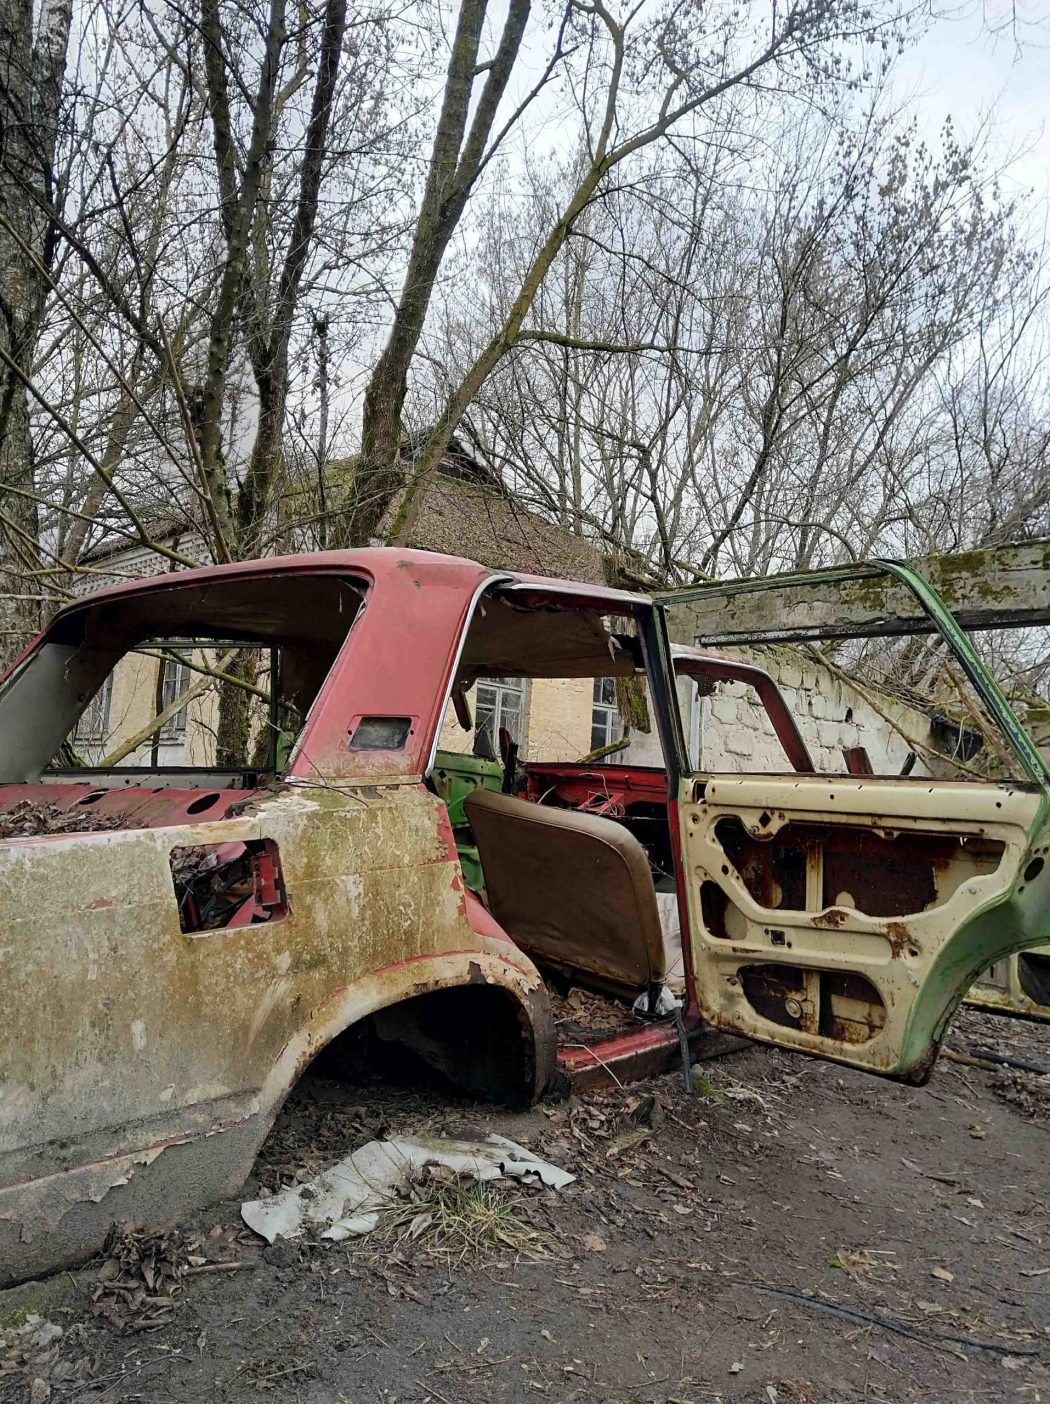 Chernobyl abandoned car